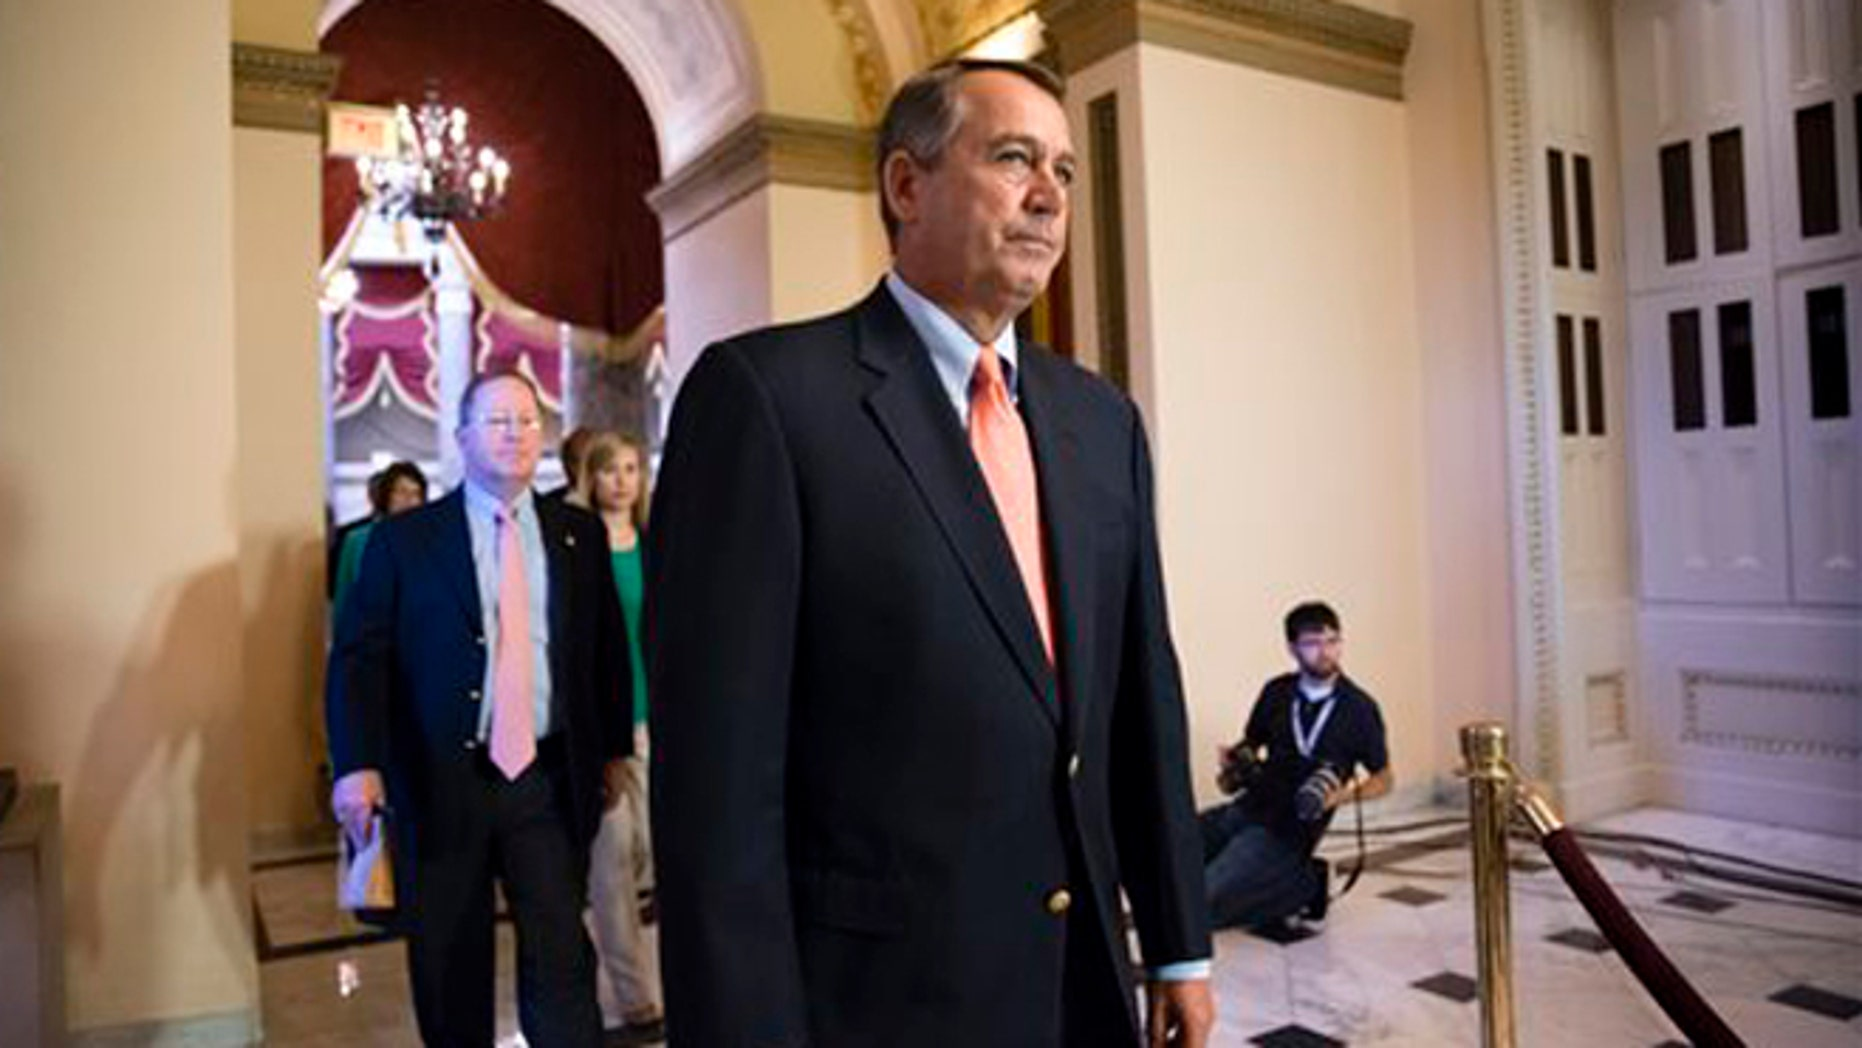 FILE: Oct. 5, 2013: House Speaker John Boehner walks to the chamber as lawmakers vote to pay furloughed federal workers, at the Capitol in Washington, D.C.